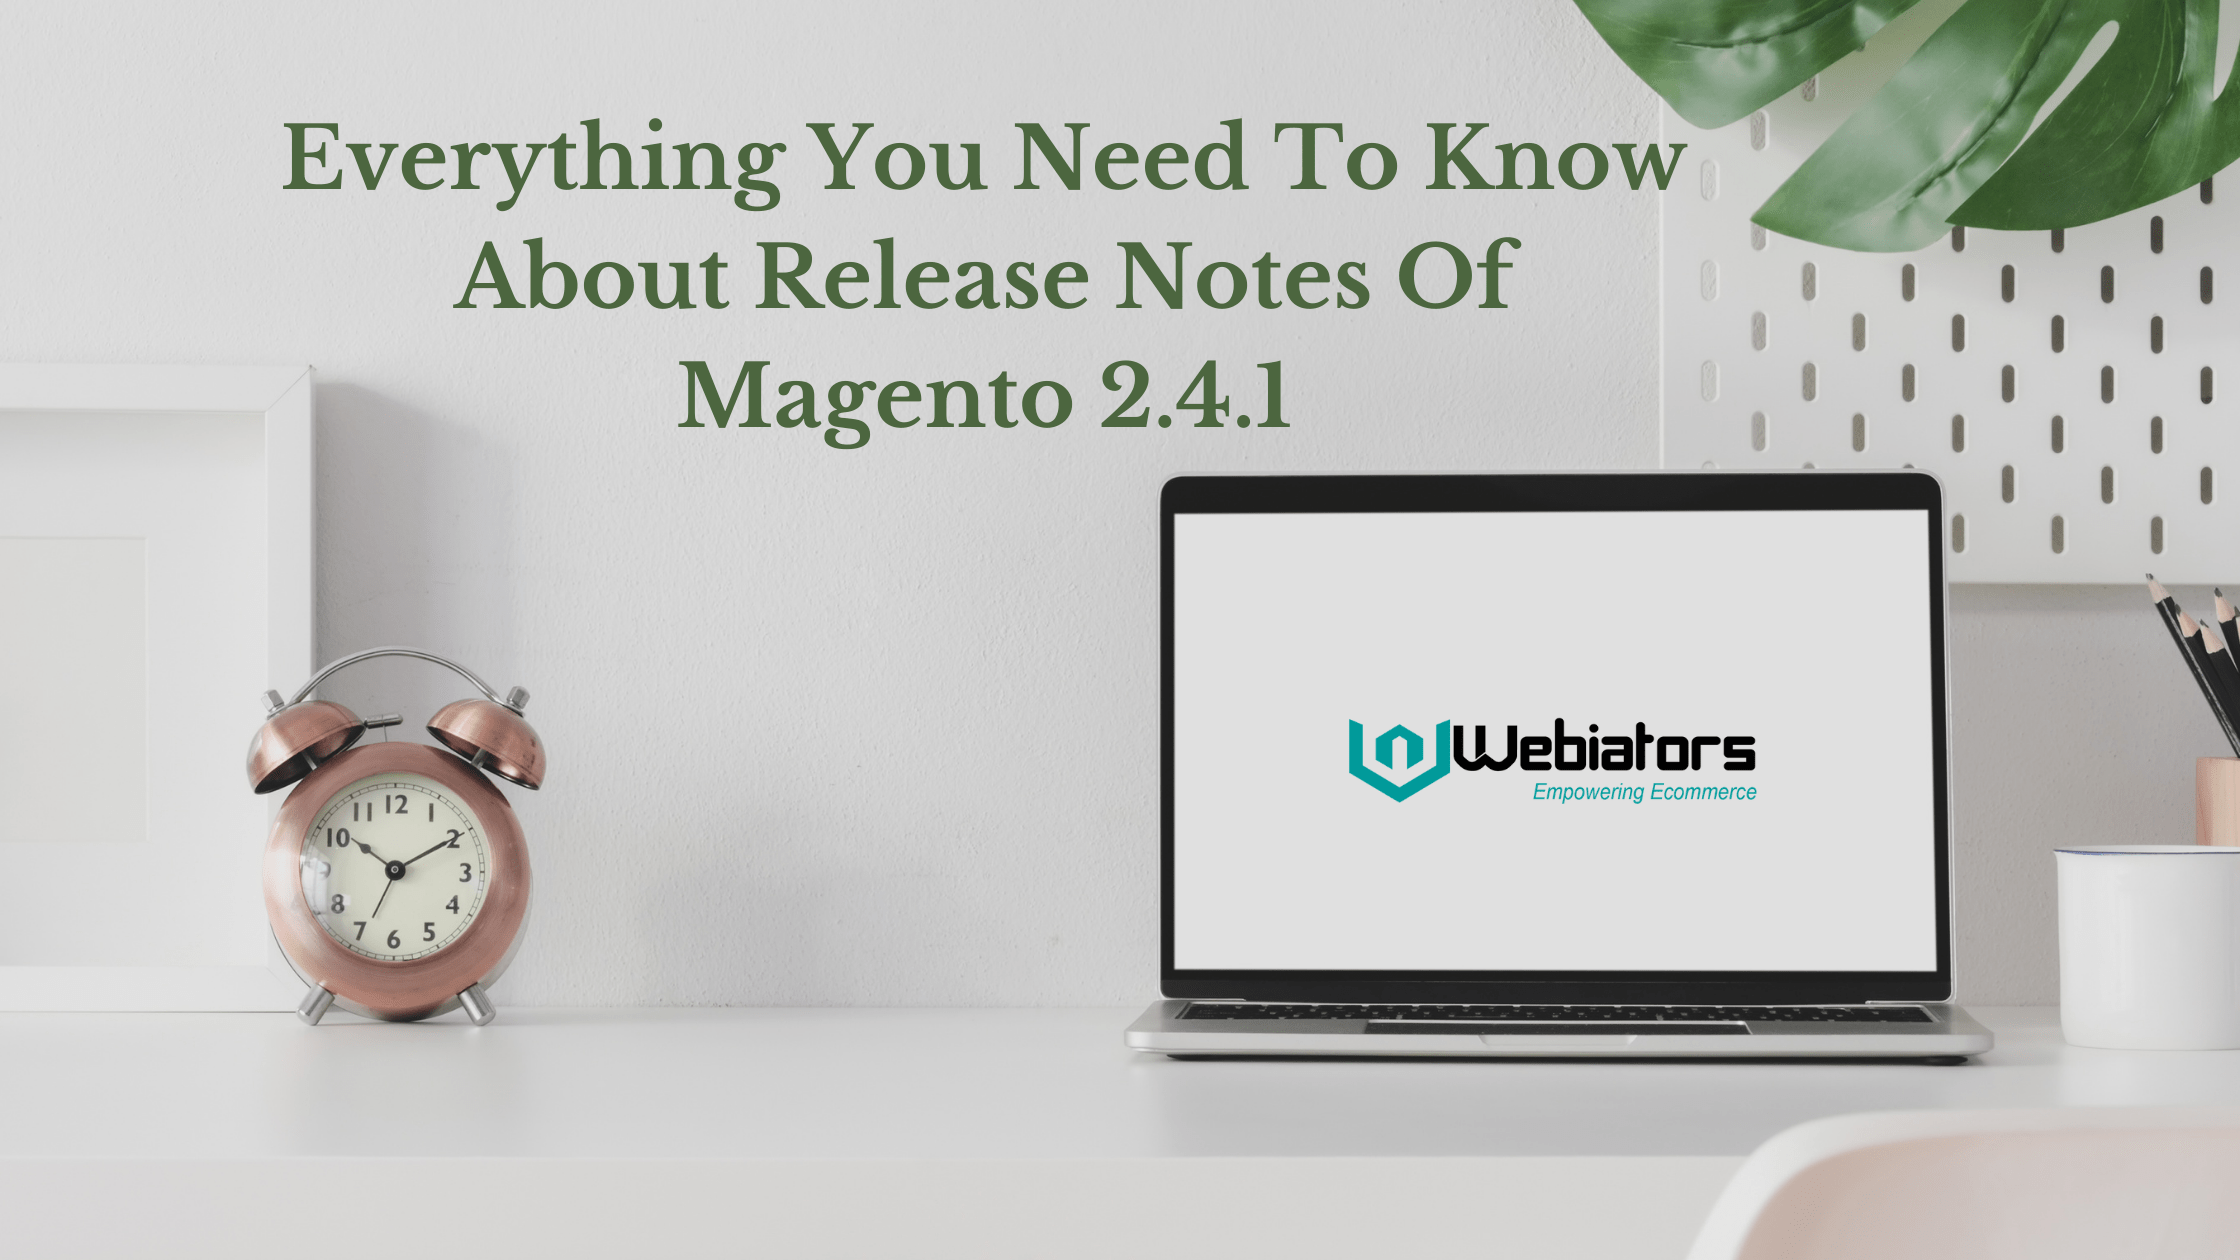 Everything You Need To Know About Release Notes Of Magento 2.4.1